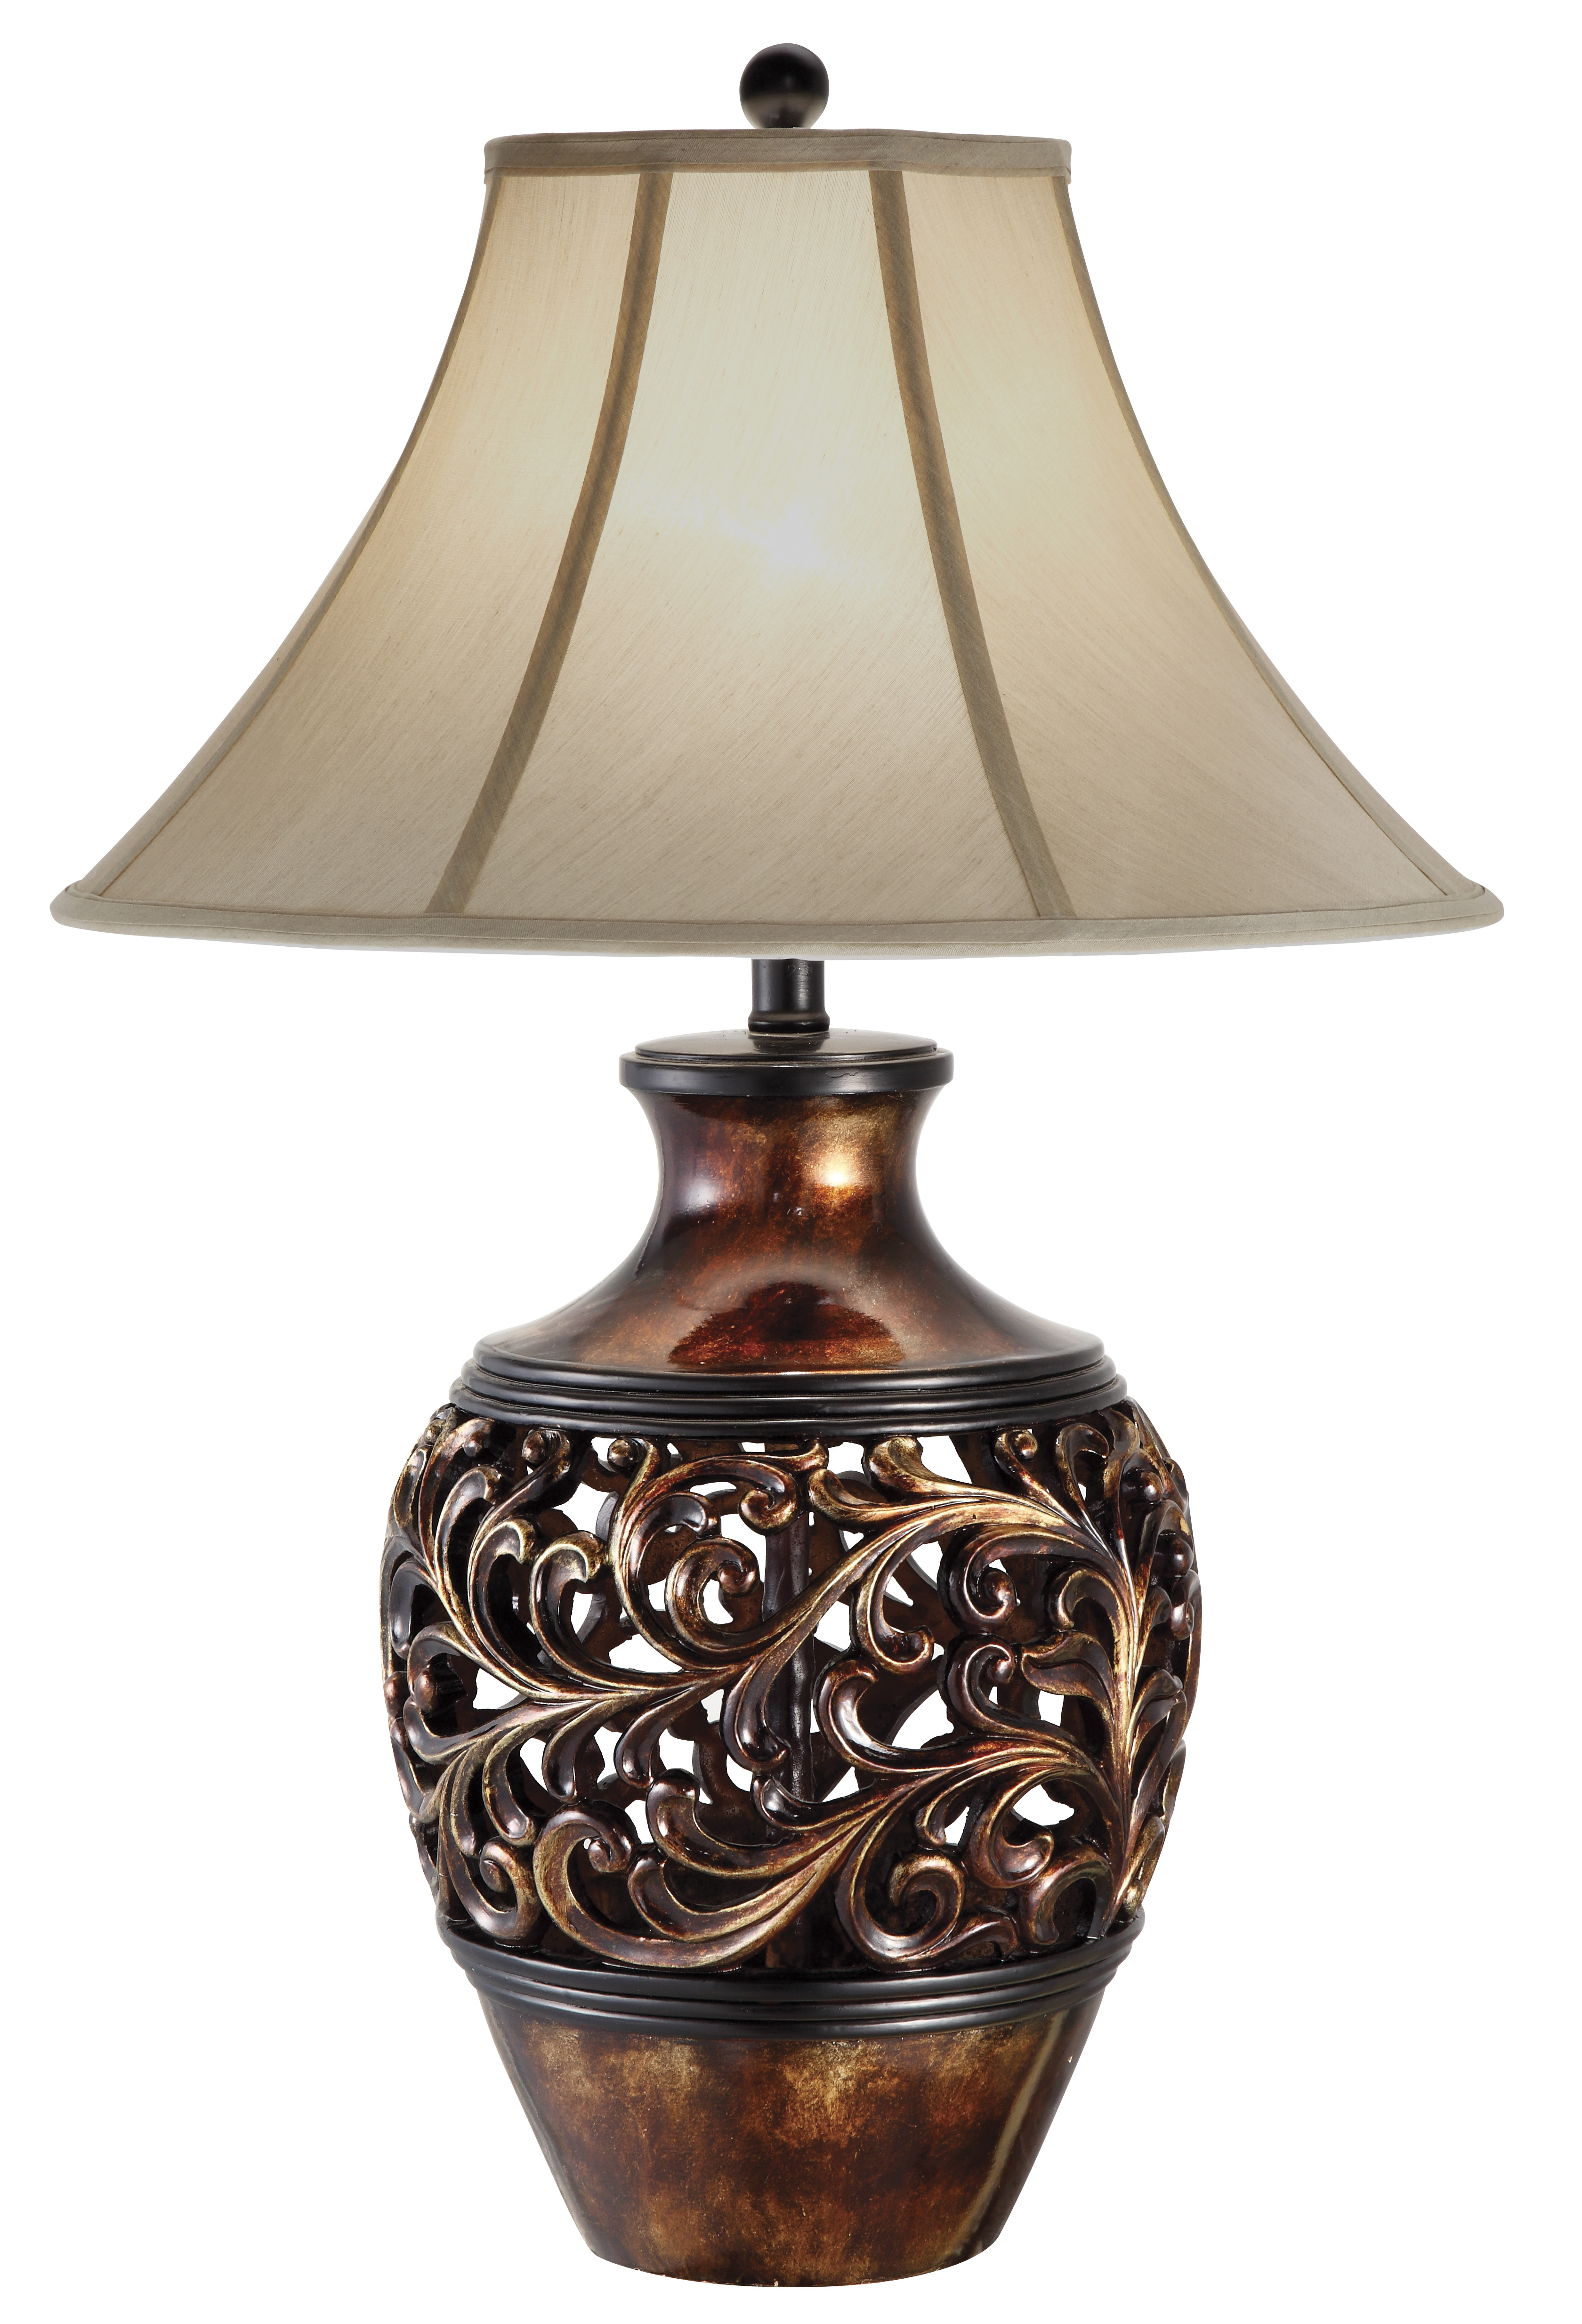 P9714 123 Table Lamp By Anthony California Inc Genesis